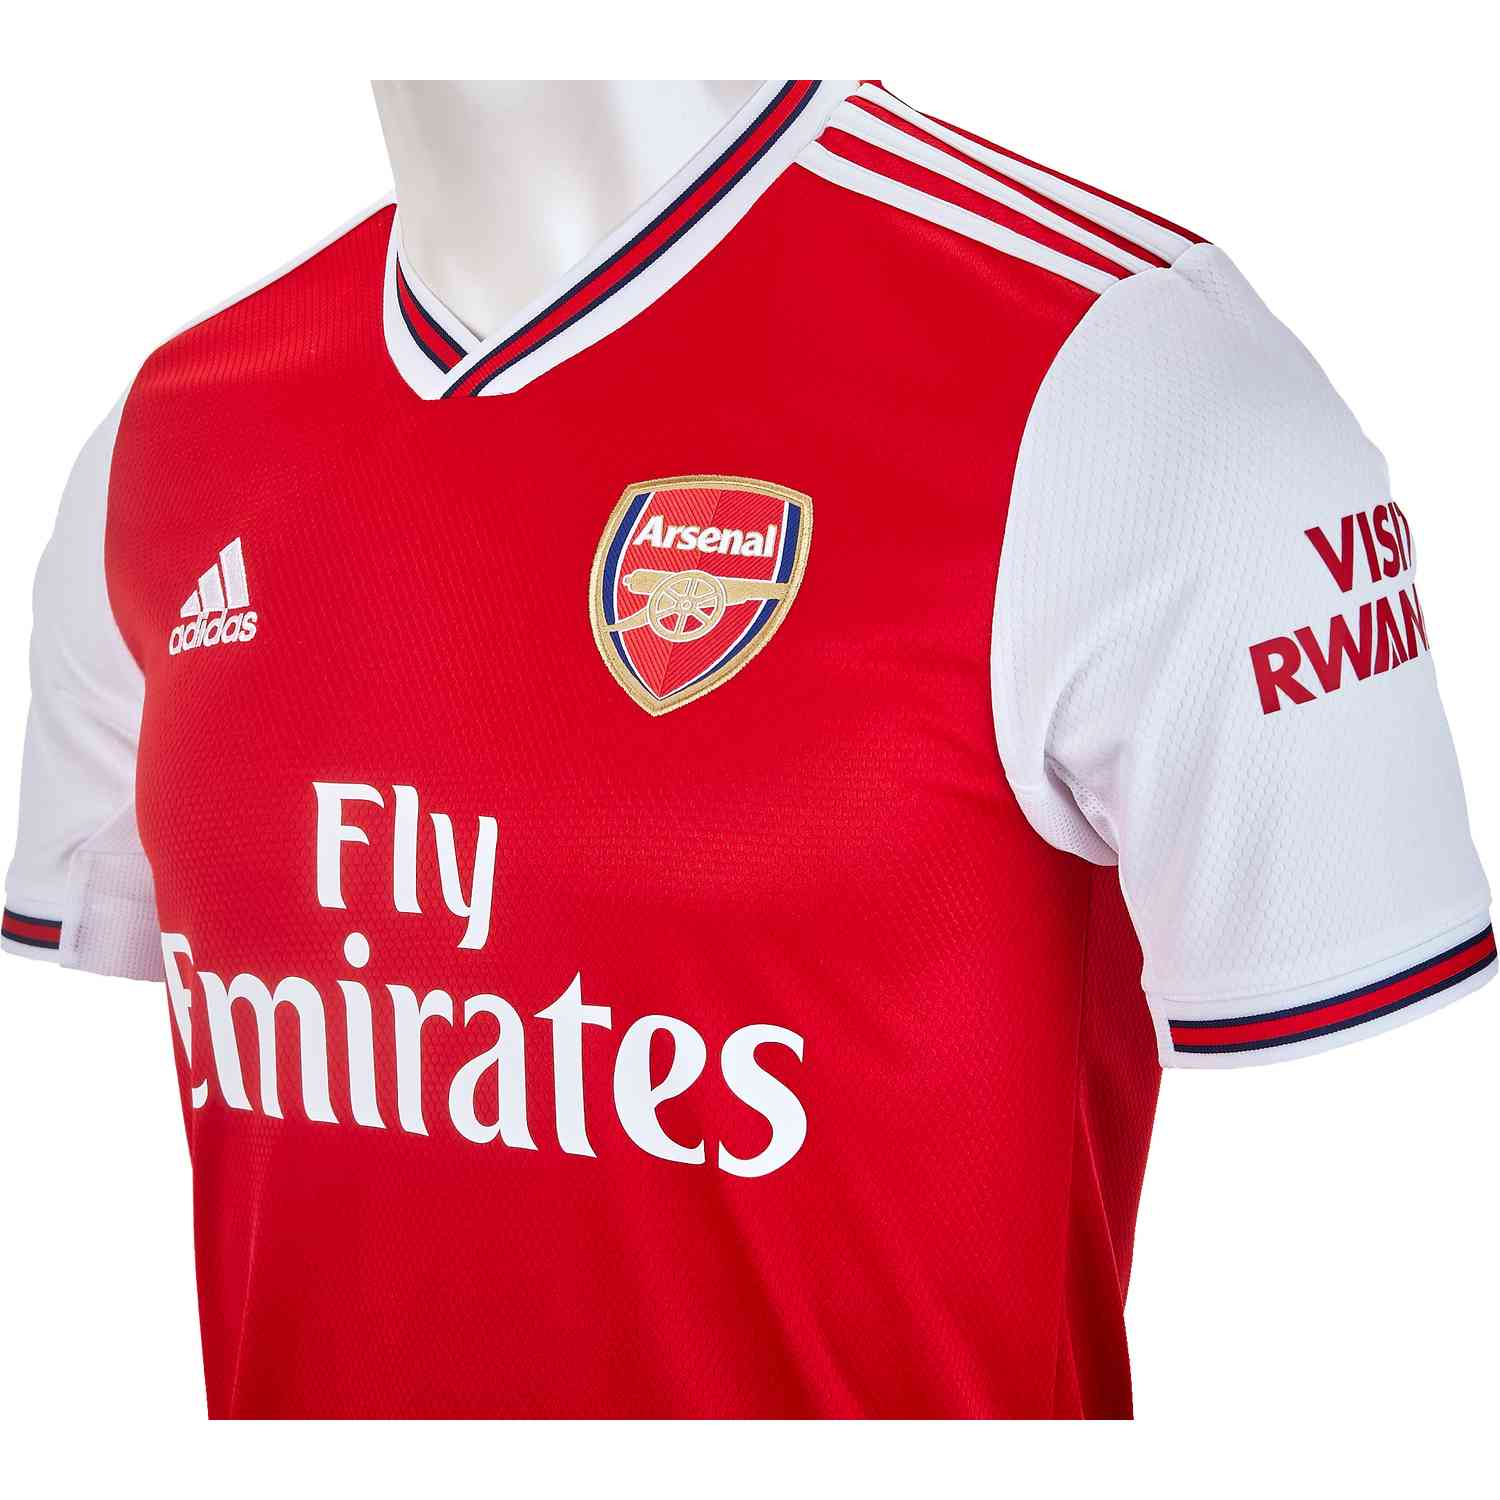 check out 45db1 43c9b 2019/20 adidas Lucas Torreira Arsenal Home Jersey - SoccerPro